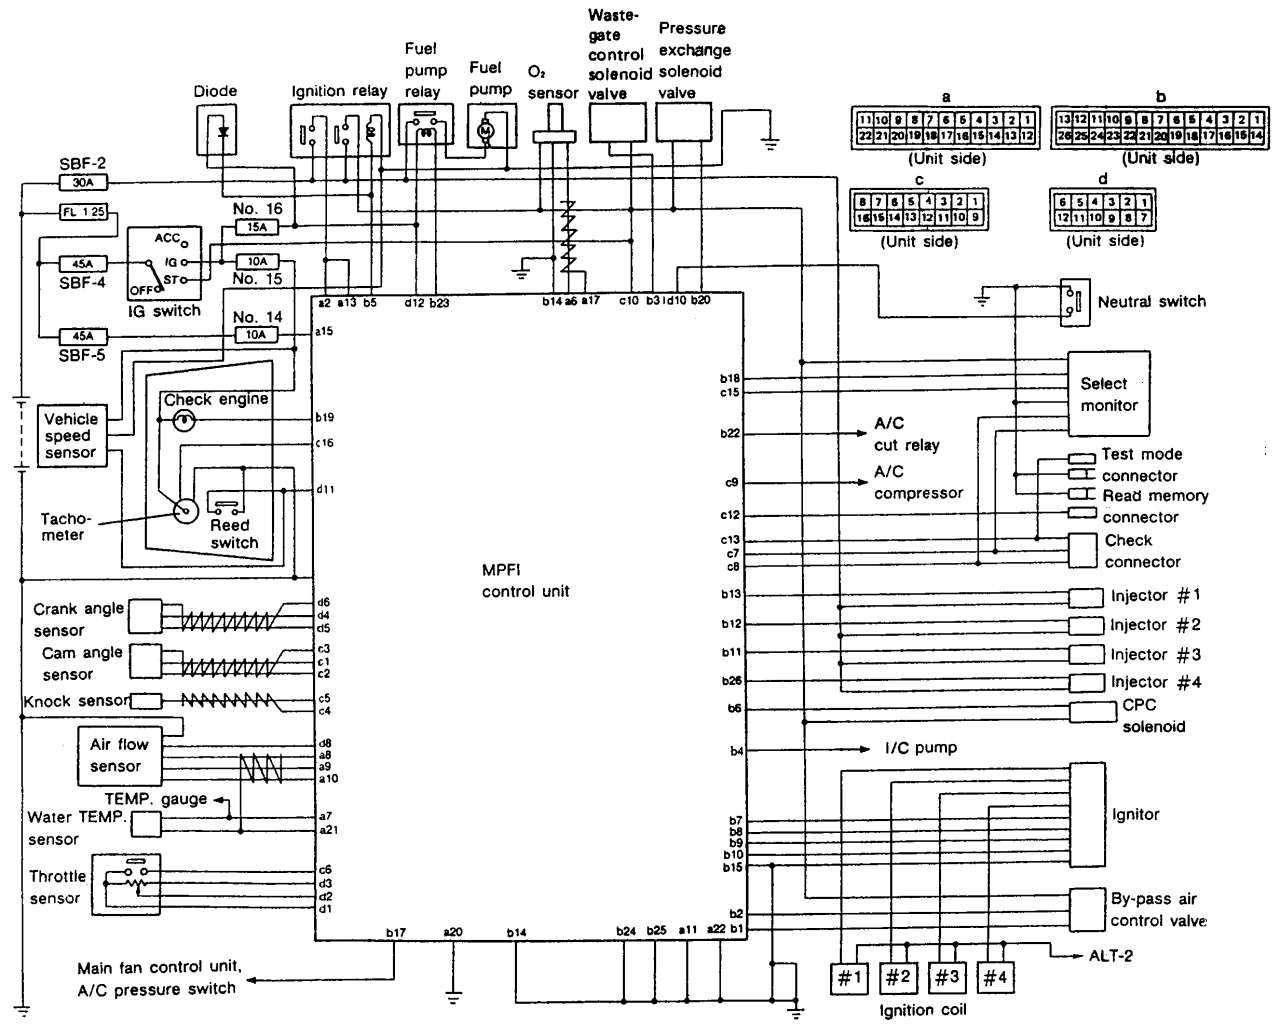 jeep liberty radio wiring diagram free picture diagram base ...  daliladilazzaro